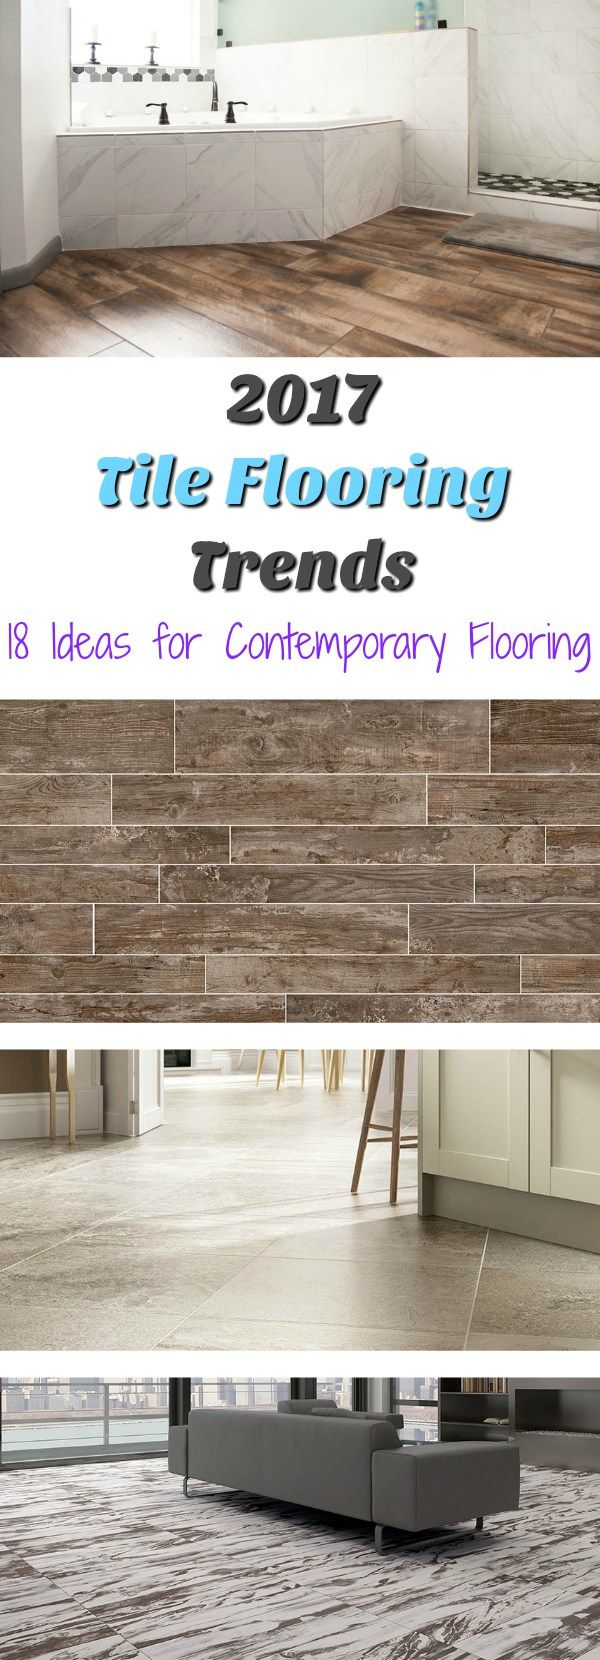 2017 tile flooring trends 18 ideas for contemporary flooring 2017 tile flooring trends 18 ideas for contemporary flooring flooringinc blog dailygadgetfo Choice Image